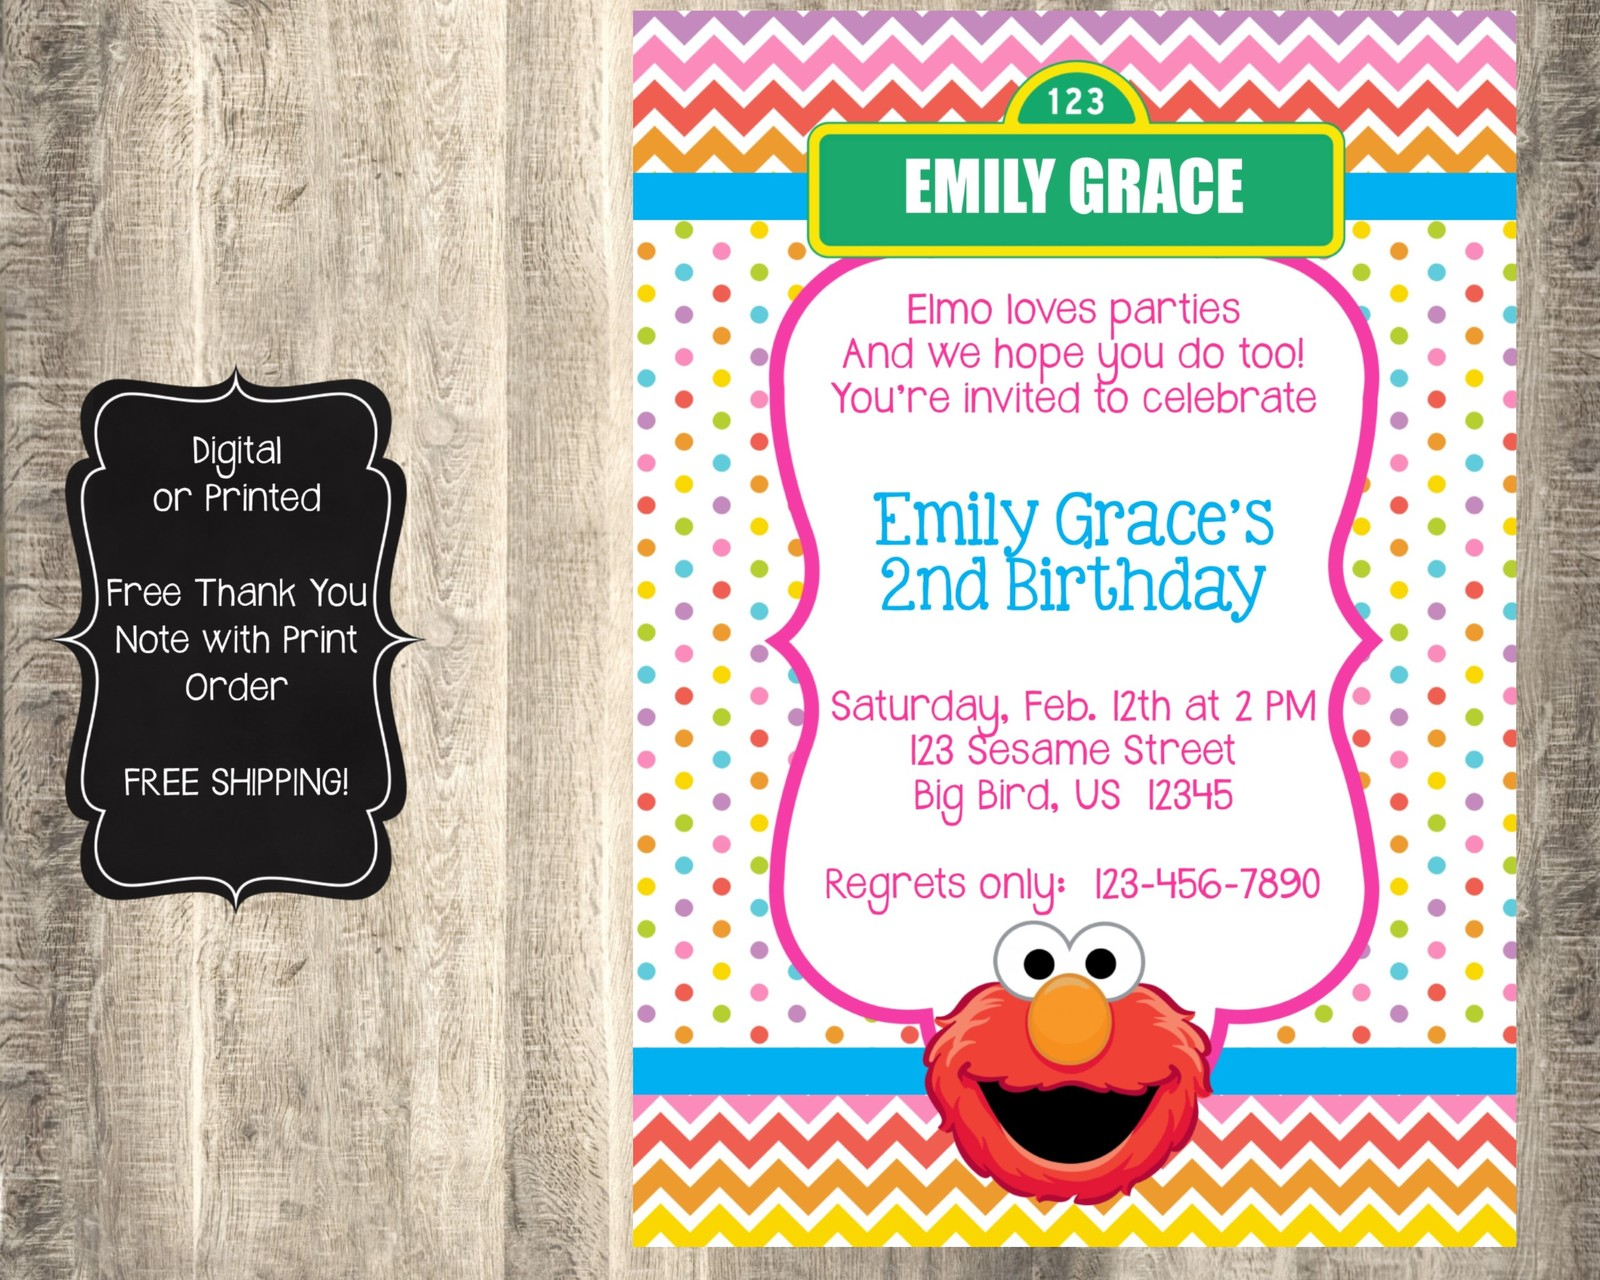 Elmo Picture Birthday Invitations - Ivoiregion